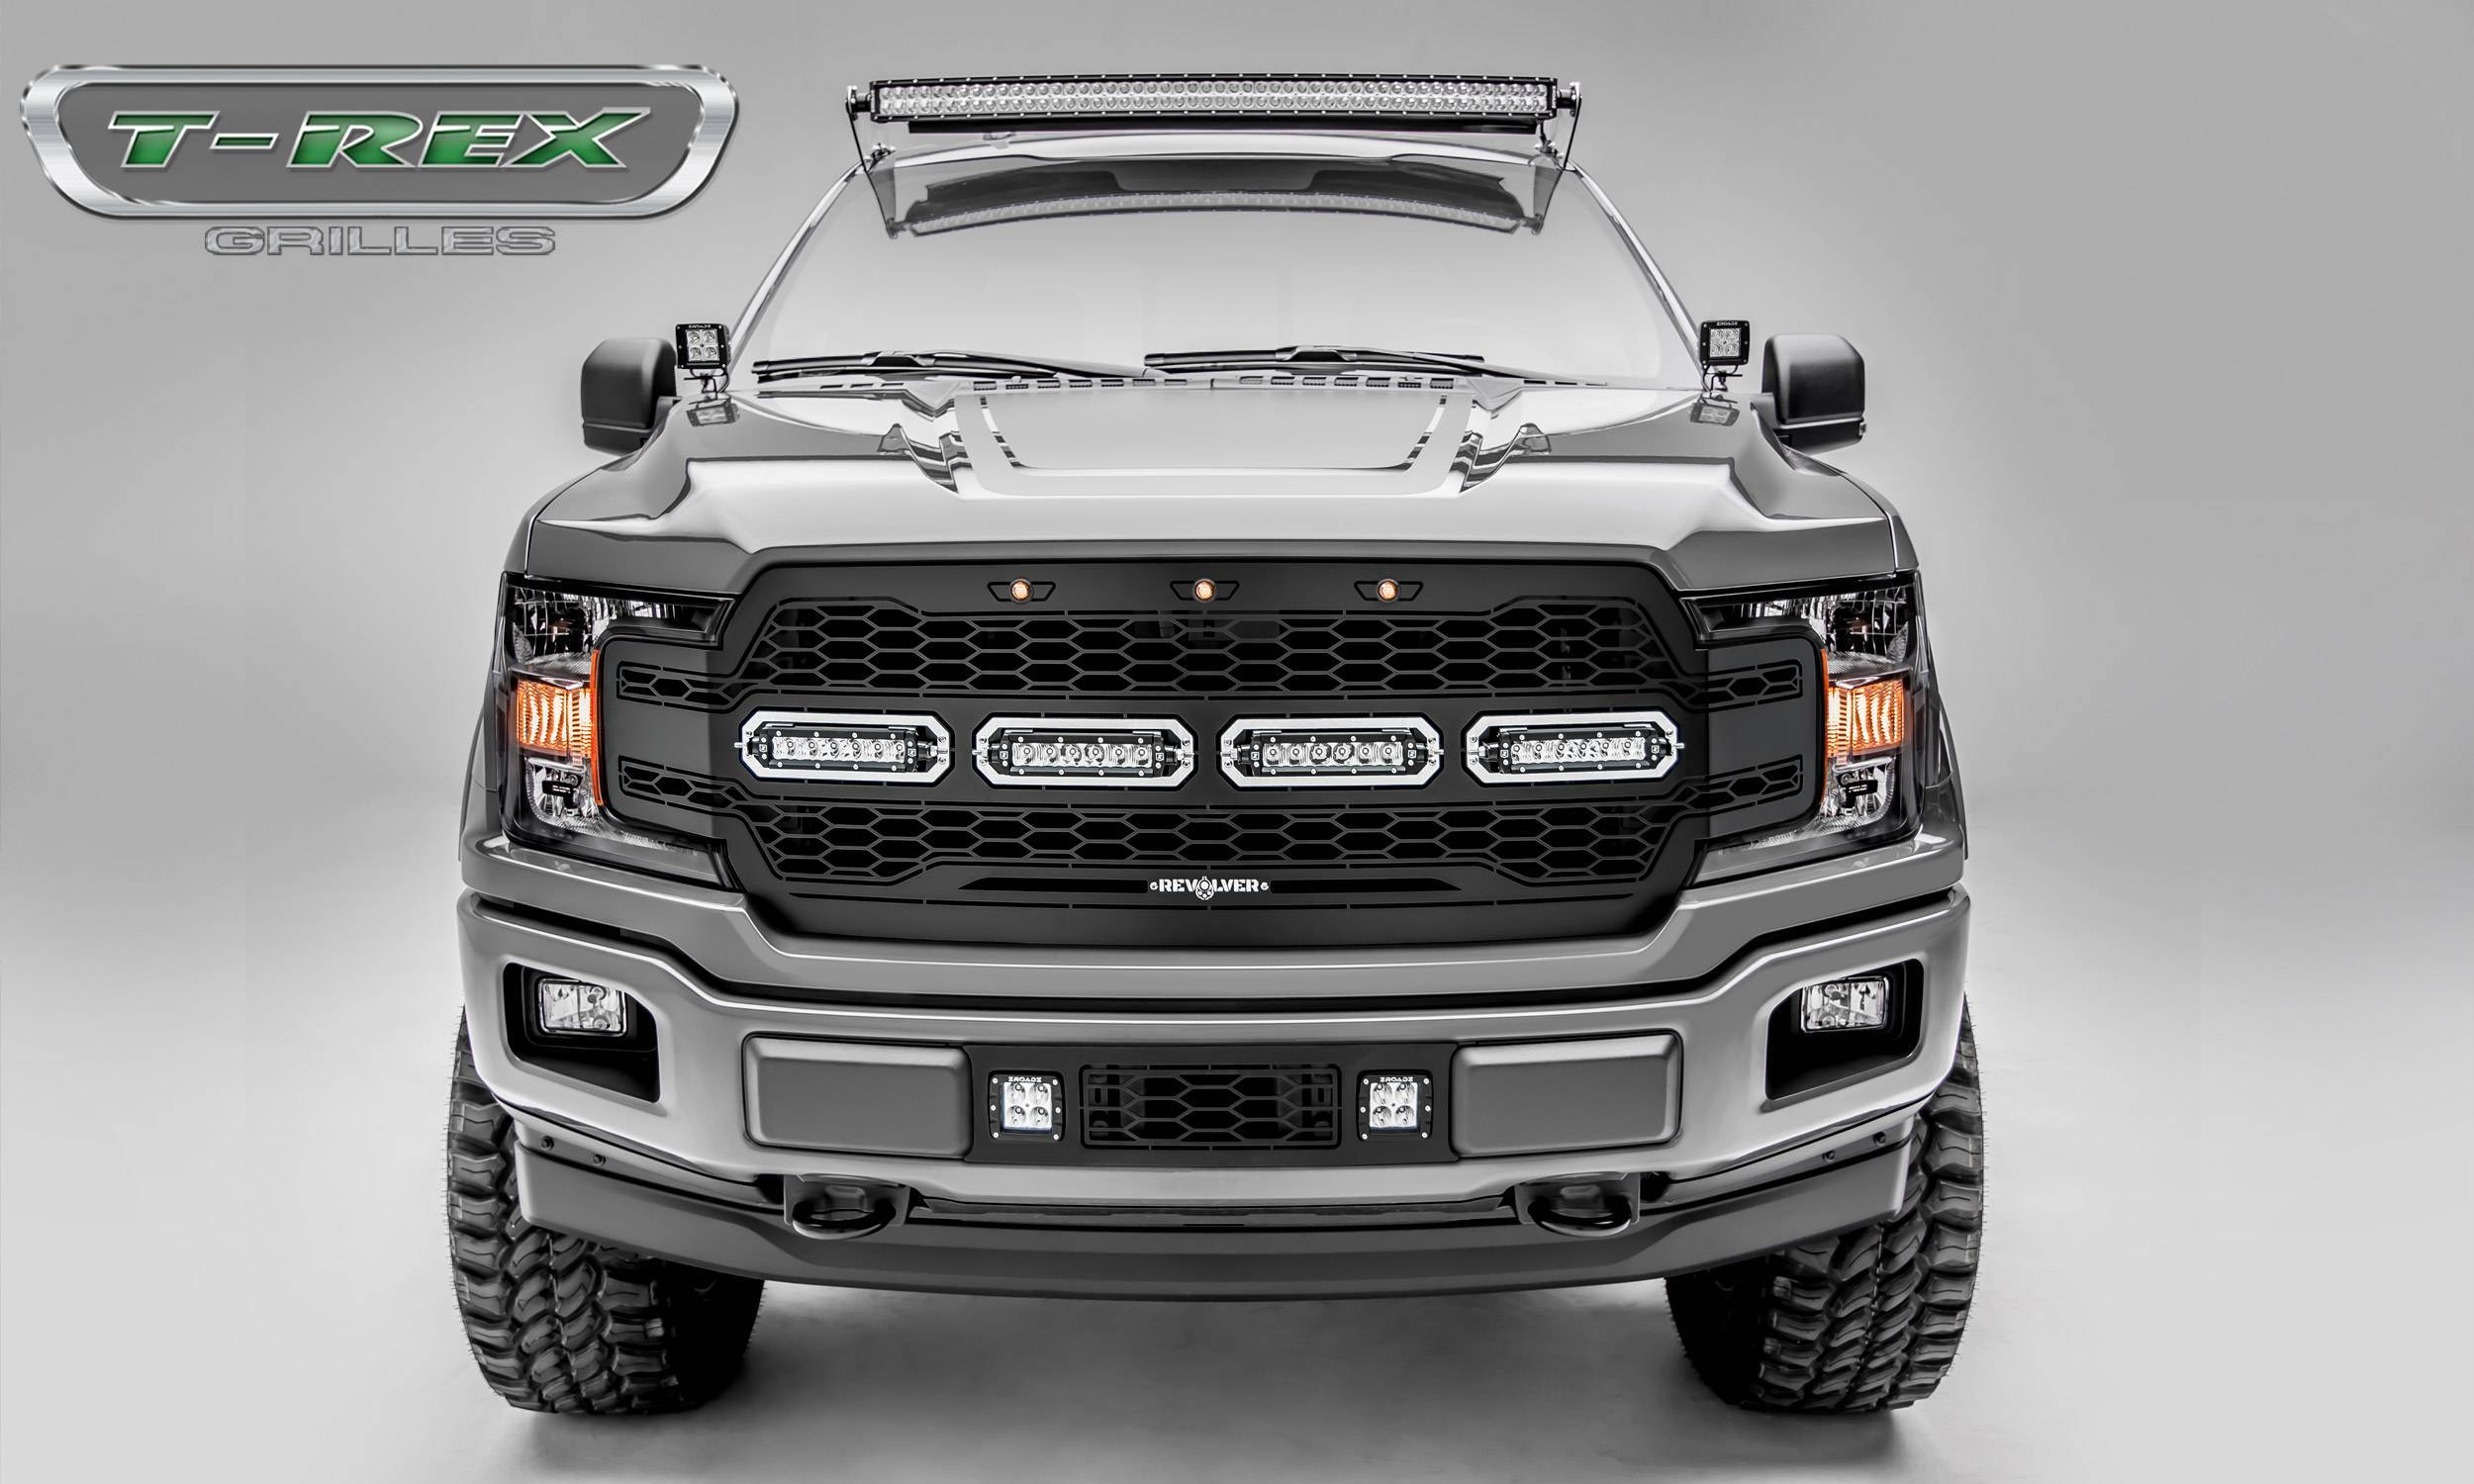 T-REX Grilles - 2018-2020 F-150 Revolver Grille, Black, 1 Pc, Replacement with (4) 6 Inch LEDs, Does Not Fit Vehicles with Camera - PN #6515841